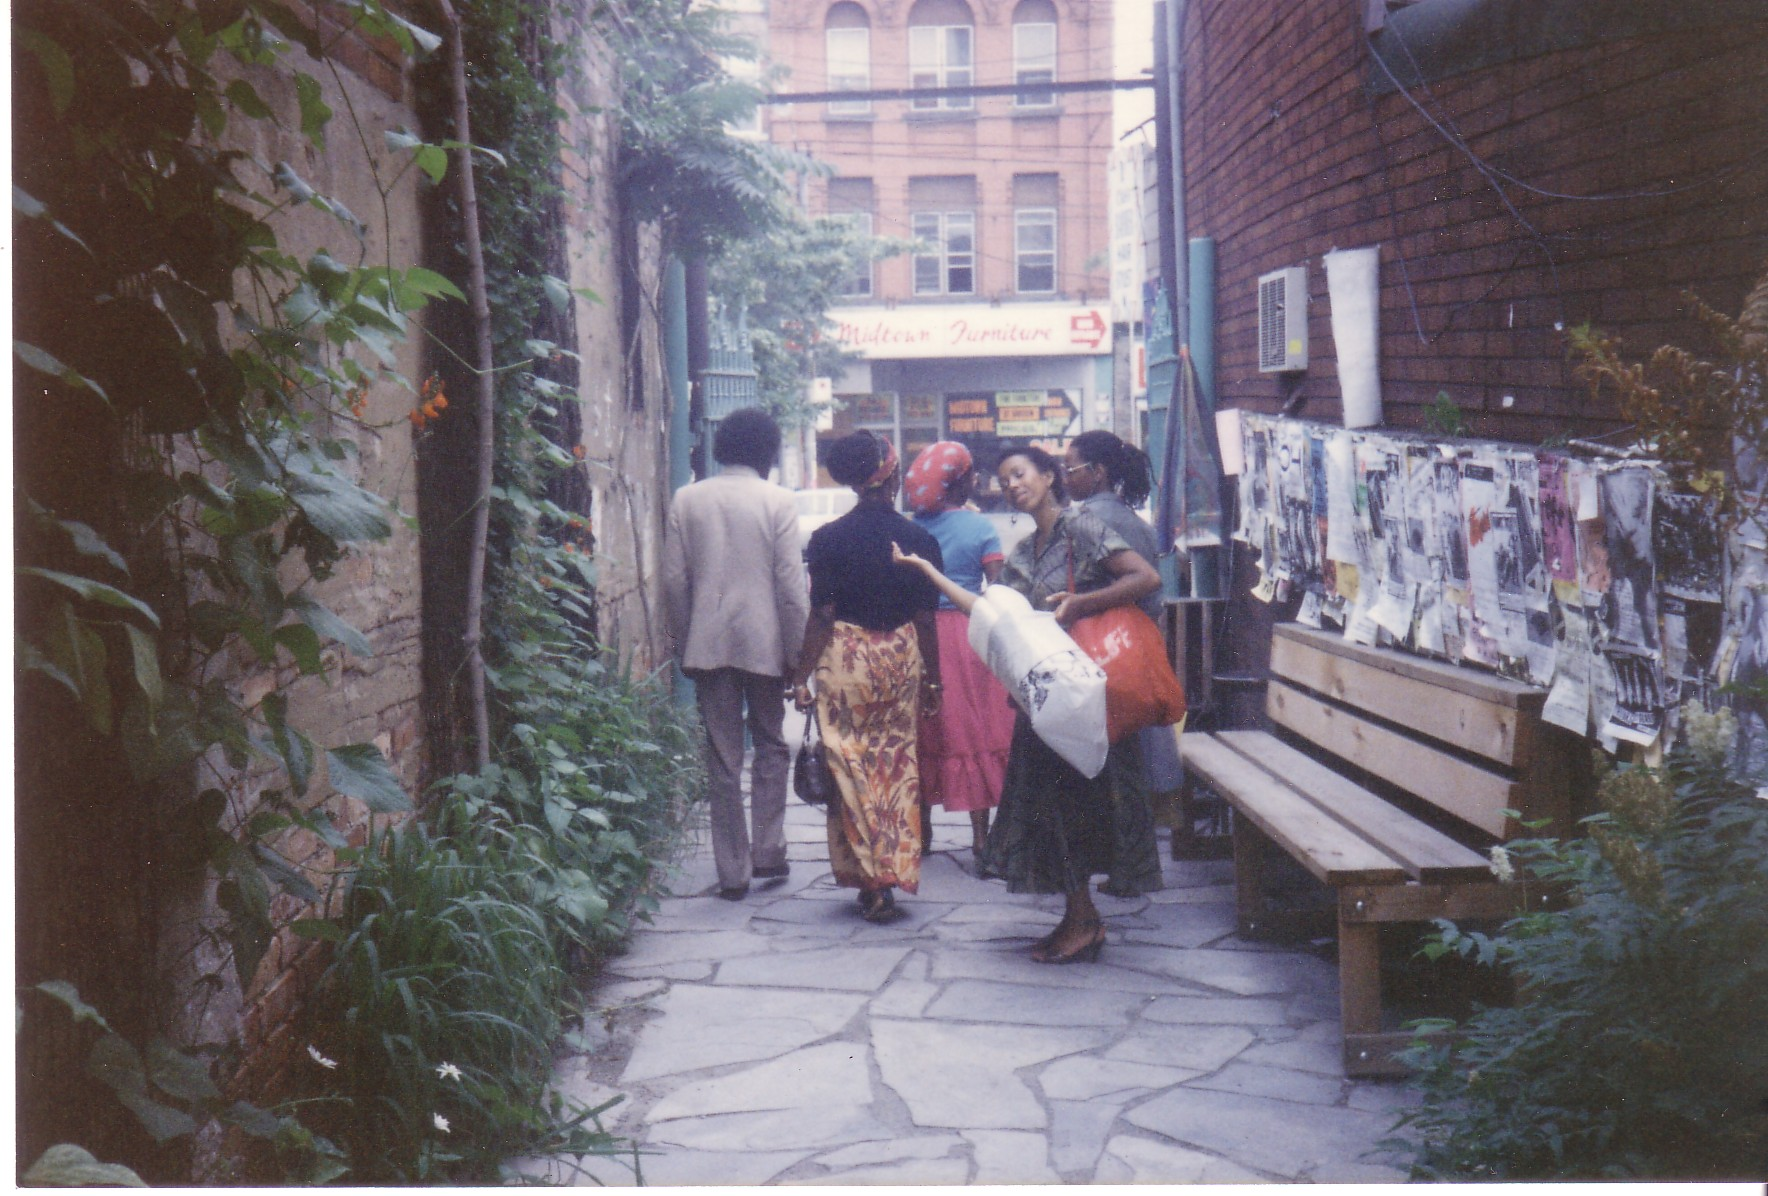 A colour photograph of an alley in which six people are walking away from the camera. One woman who is holding a white bag is turning back to look and smile at the camera.